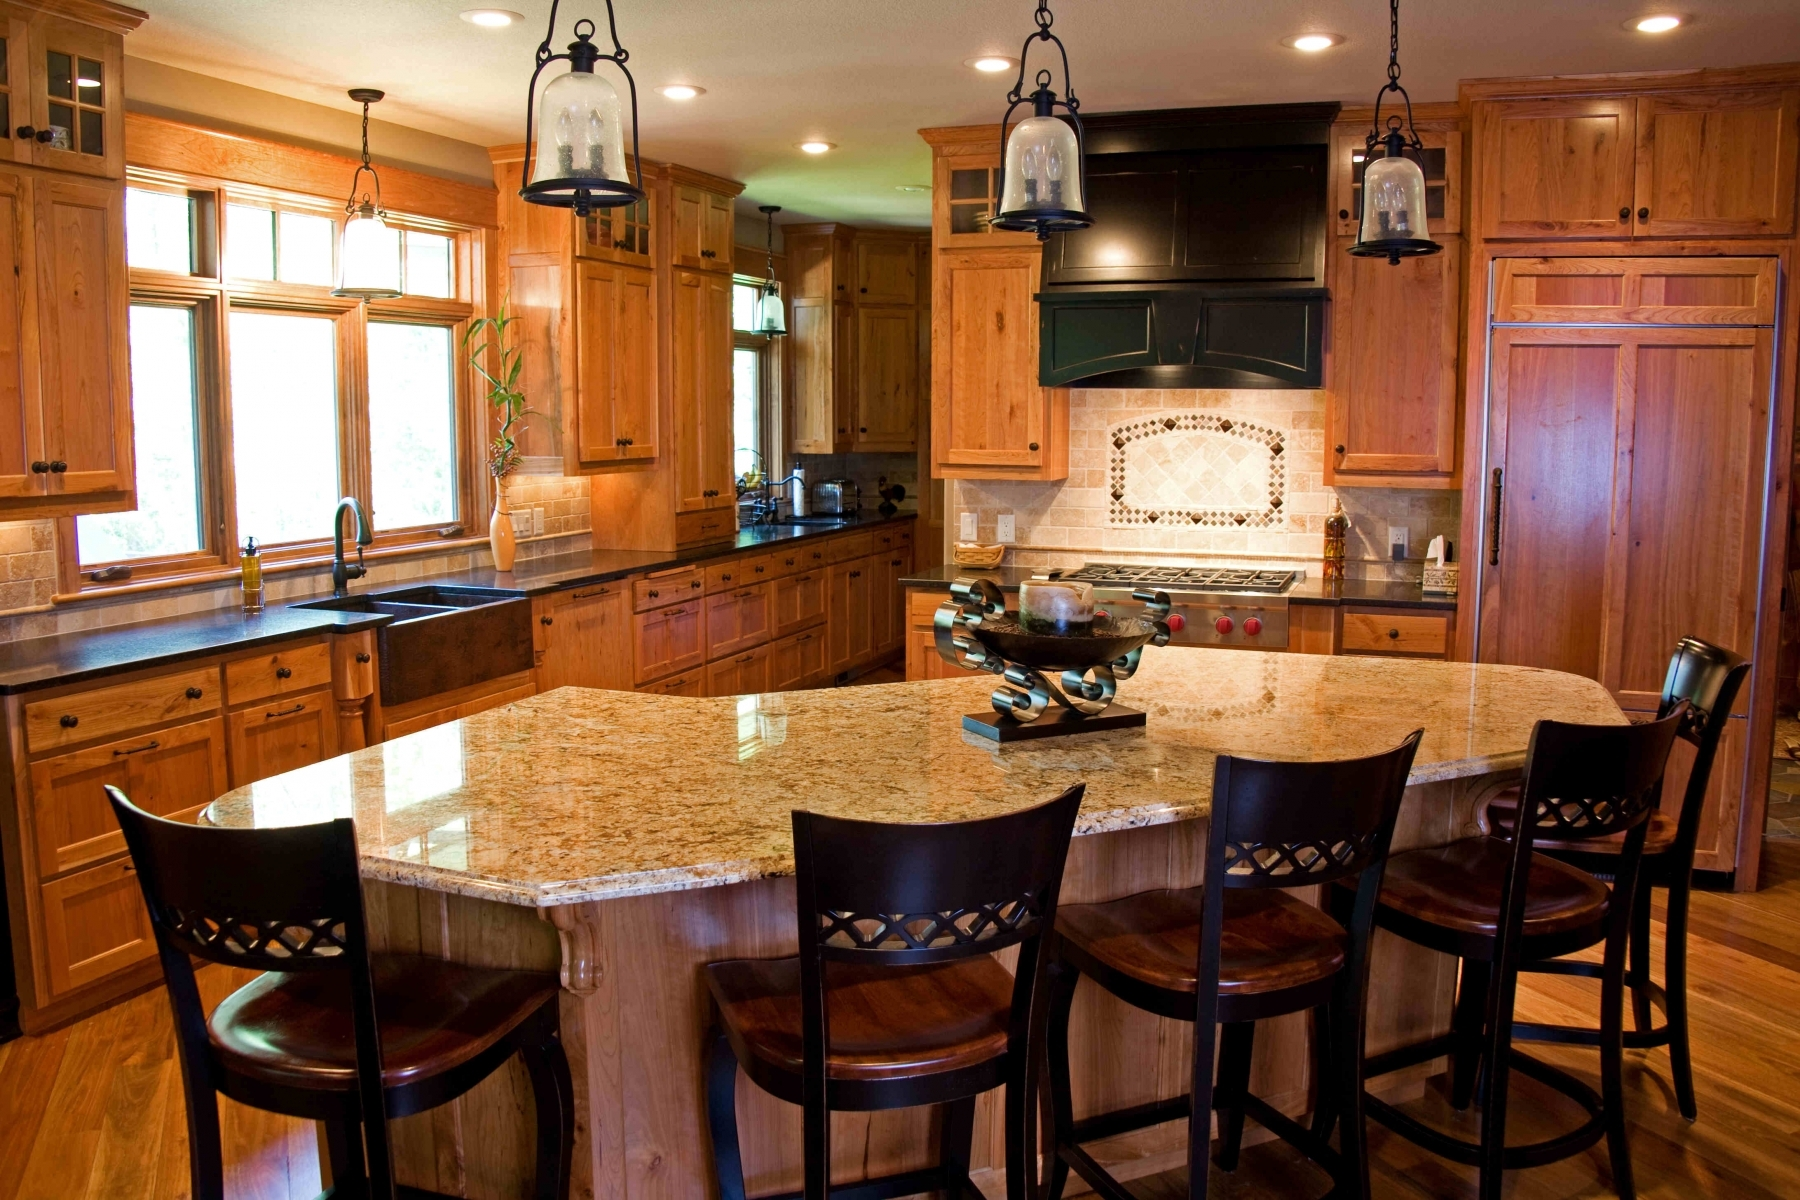 Cabinets Plus Irvine Kitchen Remodeling Contractor Cabinets Counters Flooring